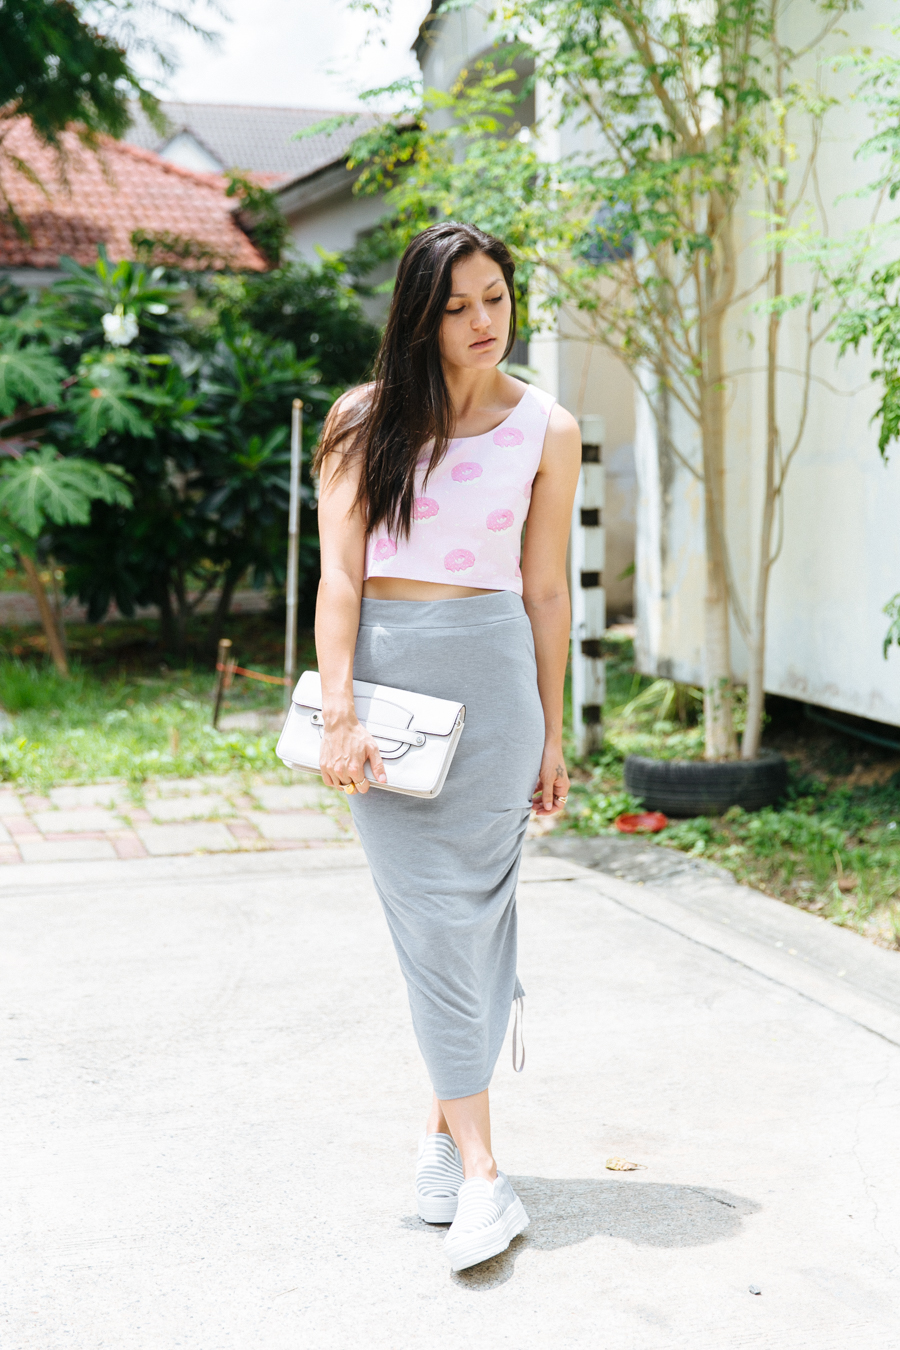 Donut print crop top & grey draped skirt.